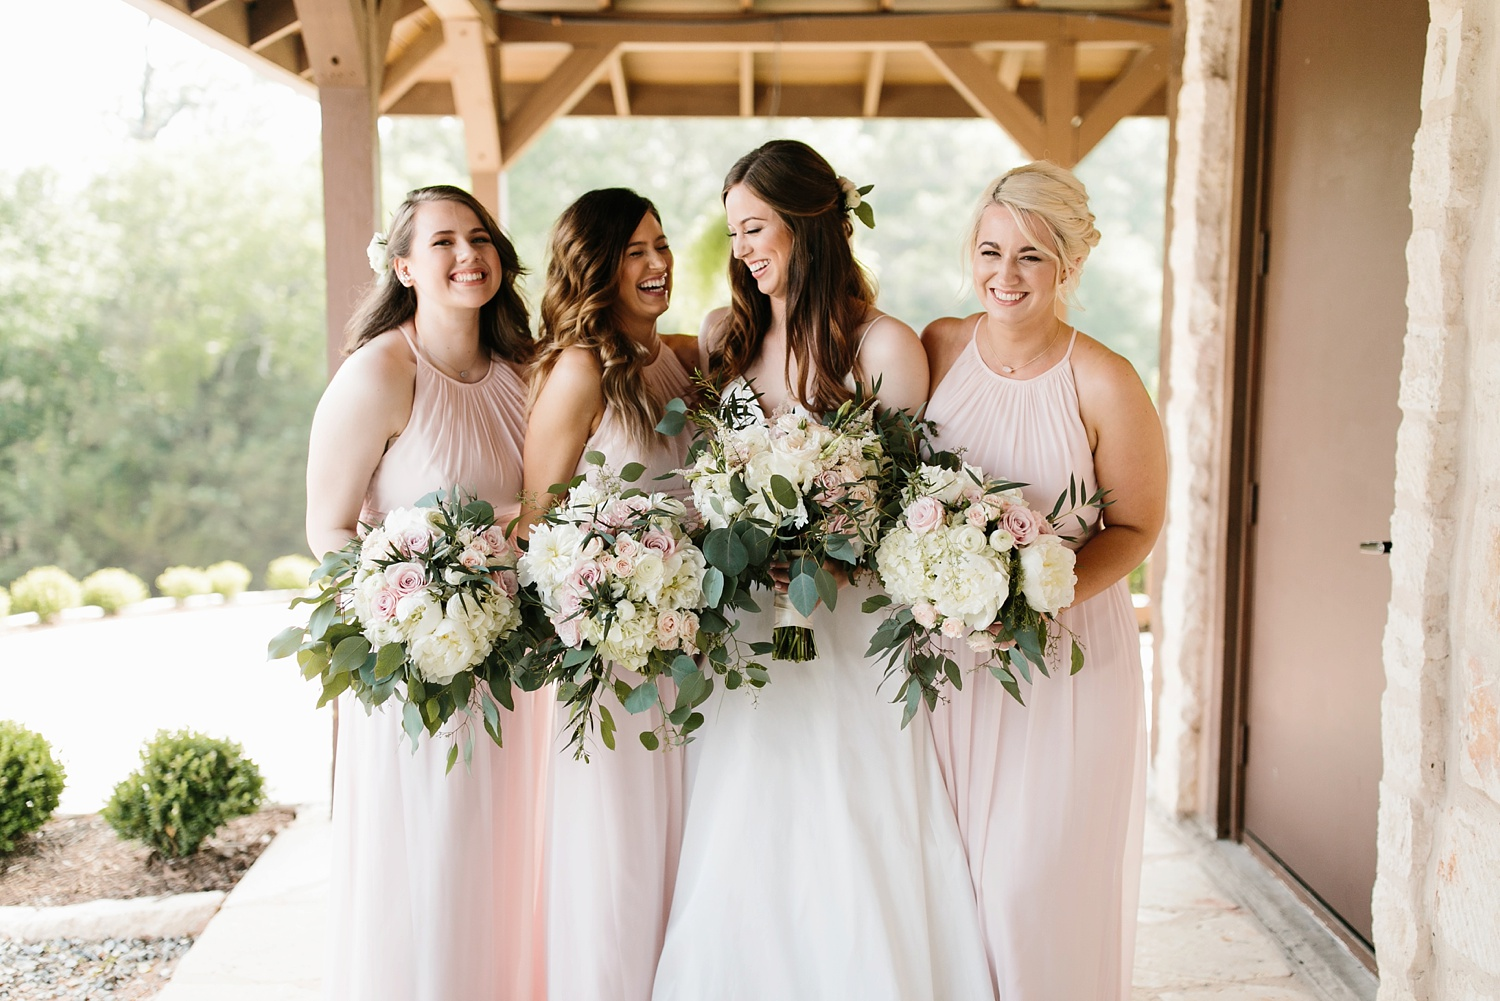 Aleta + Sabian a blush pink and navy blue wedding at The Springs in Anna, TX by North Texas Wedding Photographer _ Rachel Meagan Photography _ 028